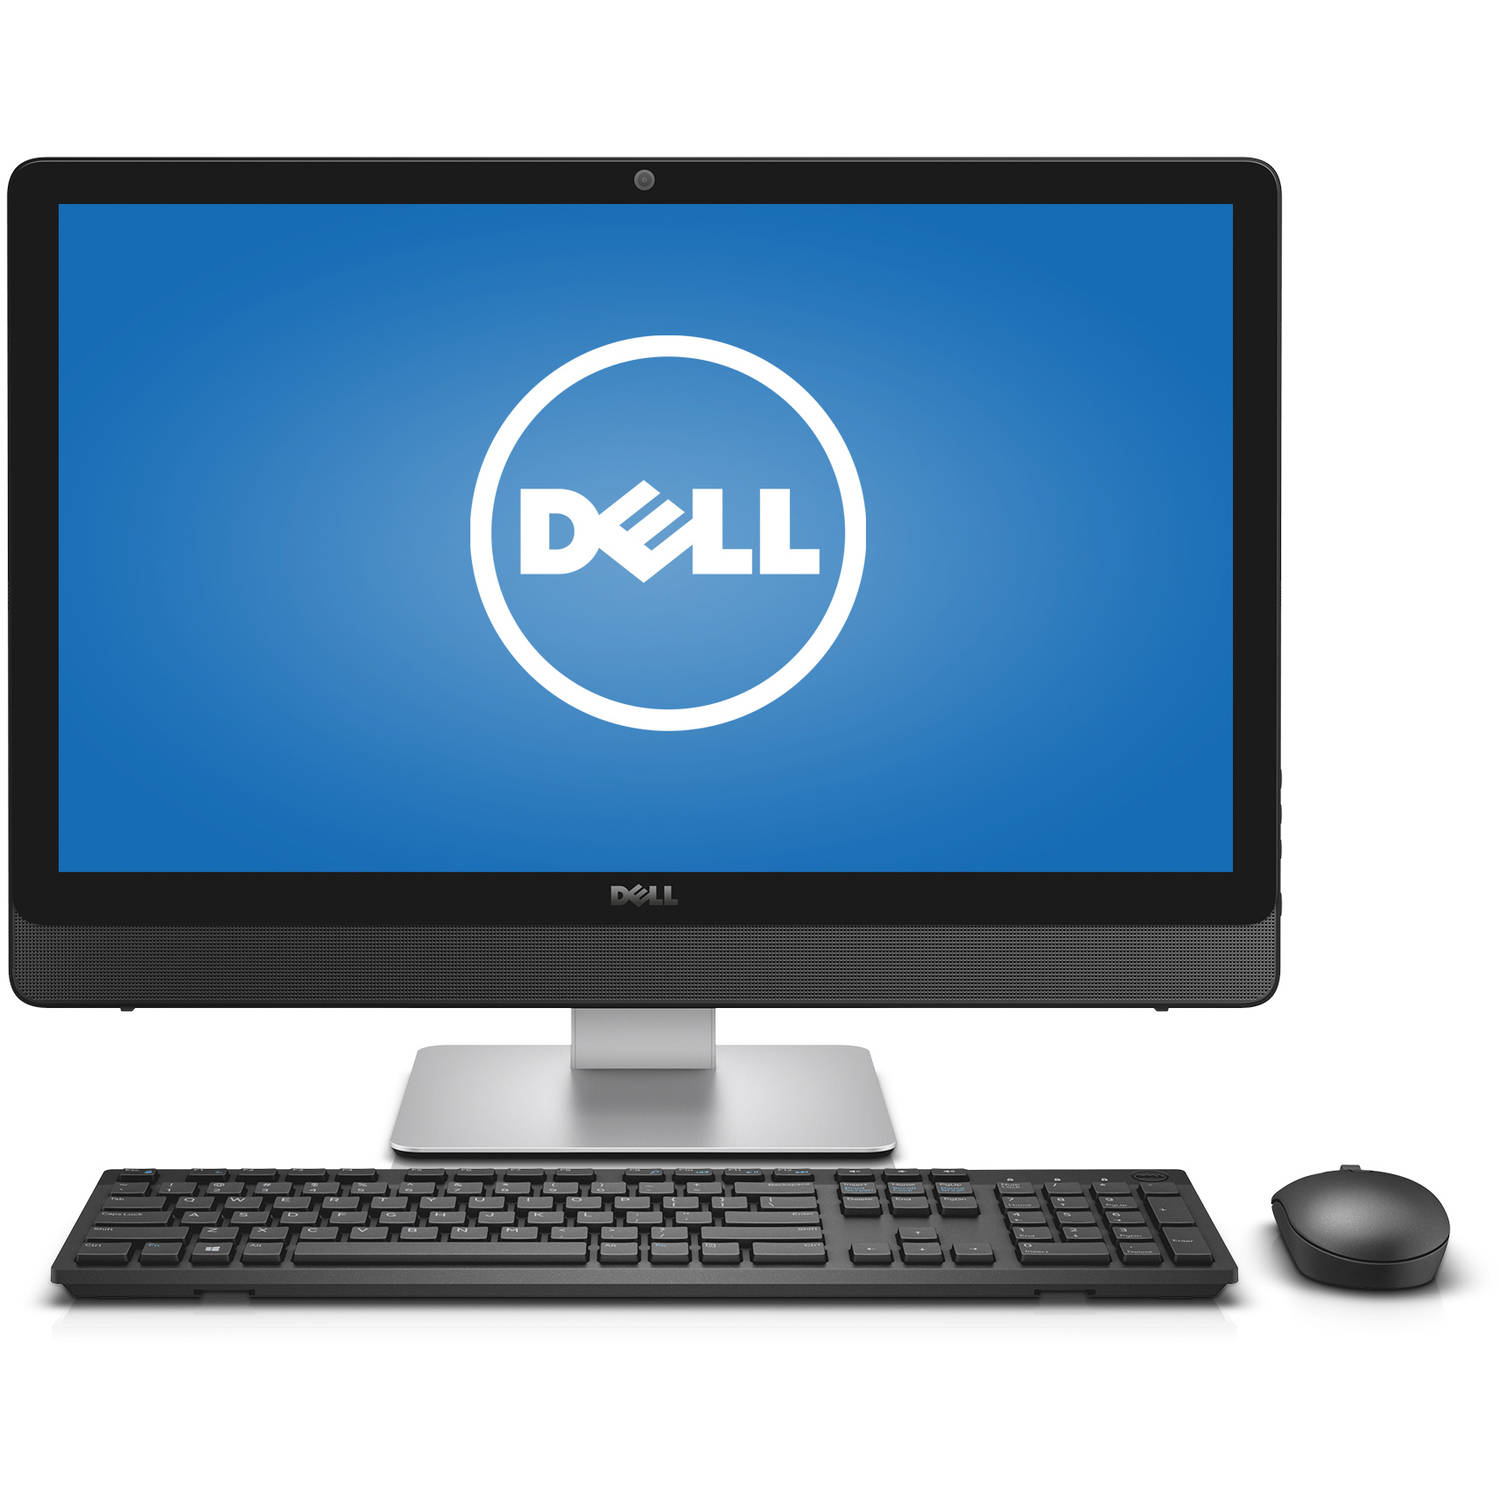 "Dell Silver Inspiron 5459 All-In-One Desktop PC with Intel Core i7-6700T Processor, 12GB Memory, 23.8"" Touchscreen Monitor, 1TB Hard Drive and Windows 10 Home"